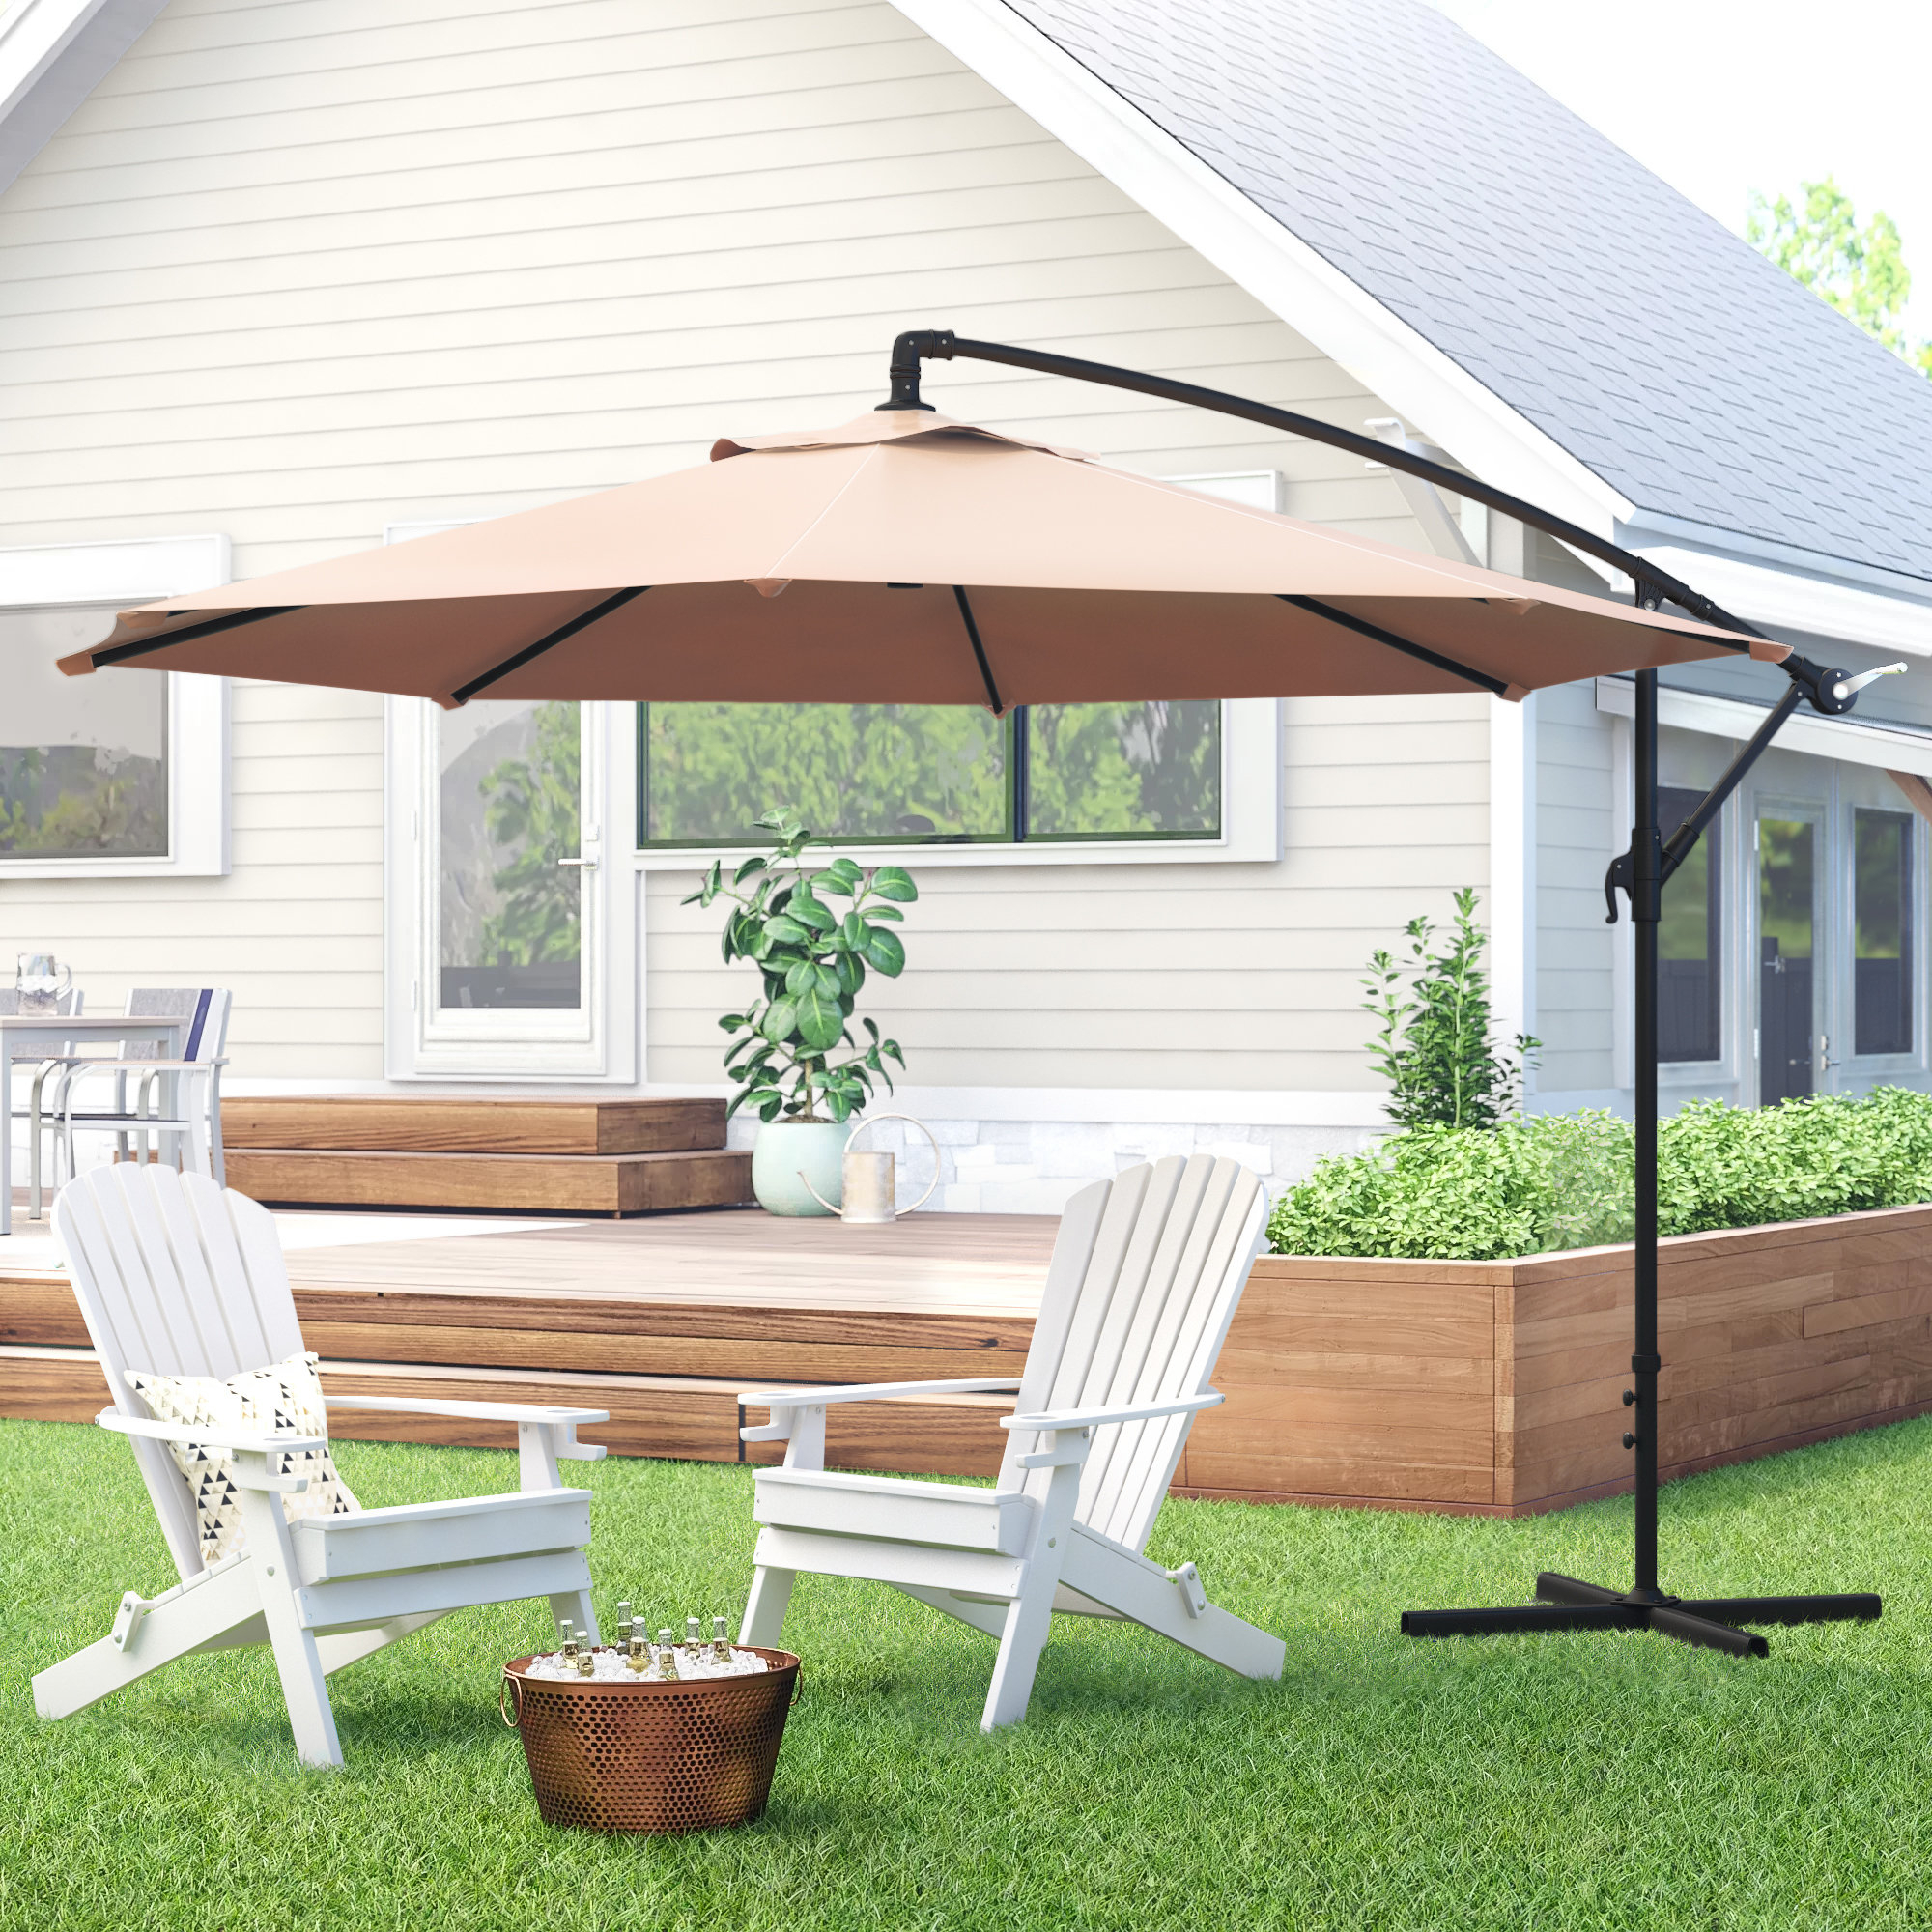 Most Current Driskill Hanging Patio 10' Cantilever Umbrella Within Tallulah Sunshade Hanging Outdoor Cantilever Umbrellas (View 9 of 20)